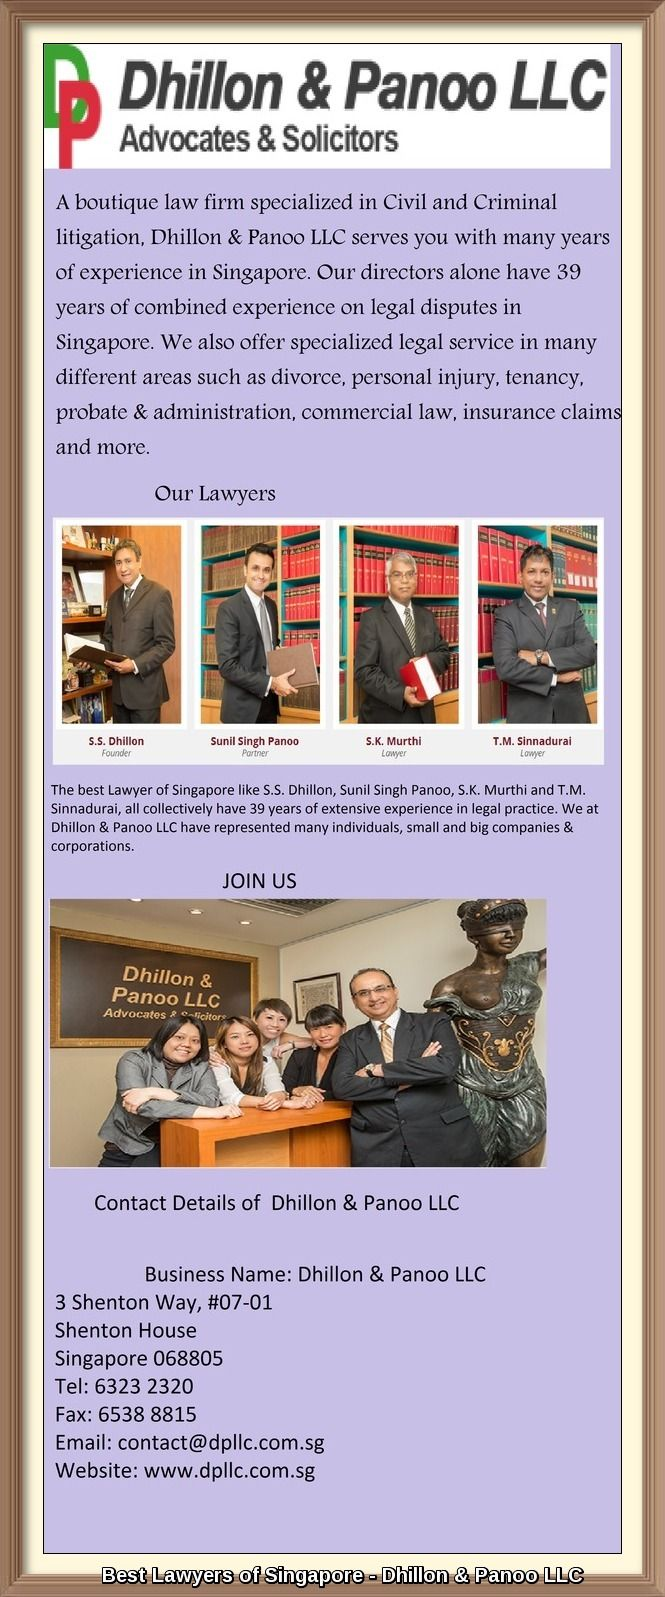 The best Lawyer of Singapore like S S  Dhillon, Sunil Singh